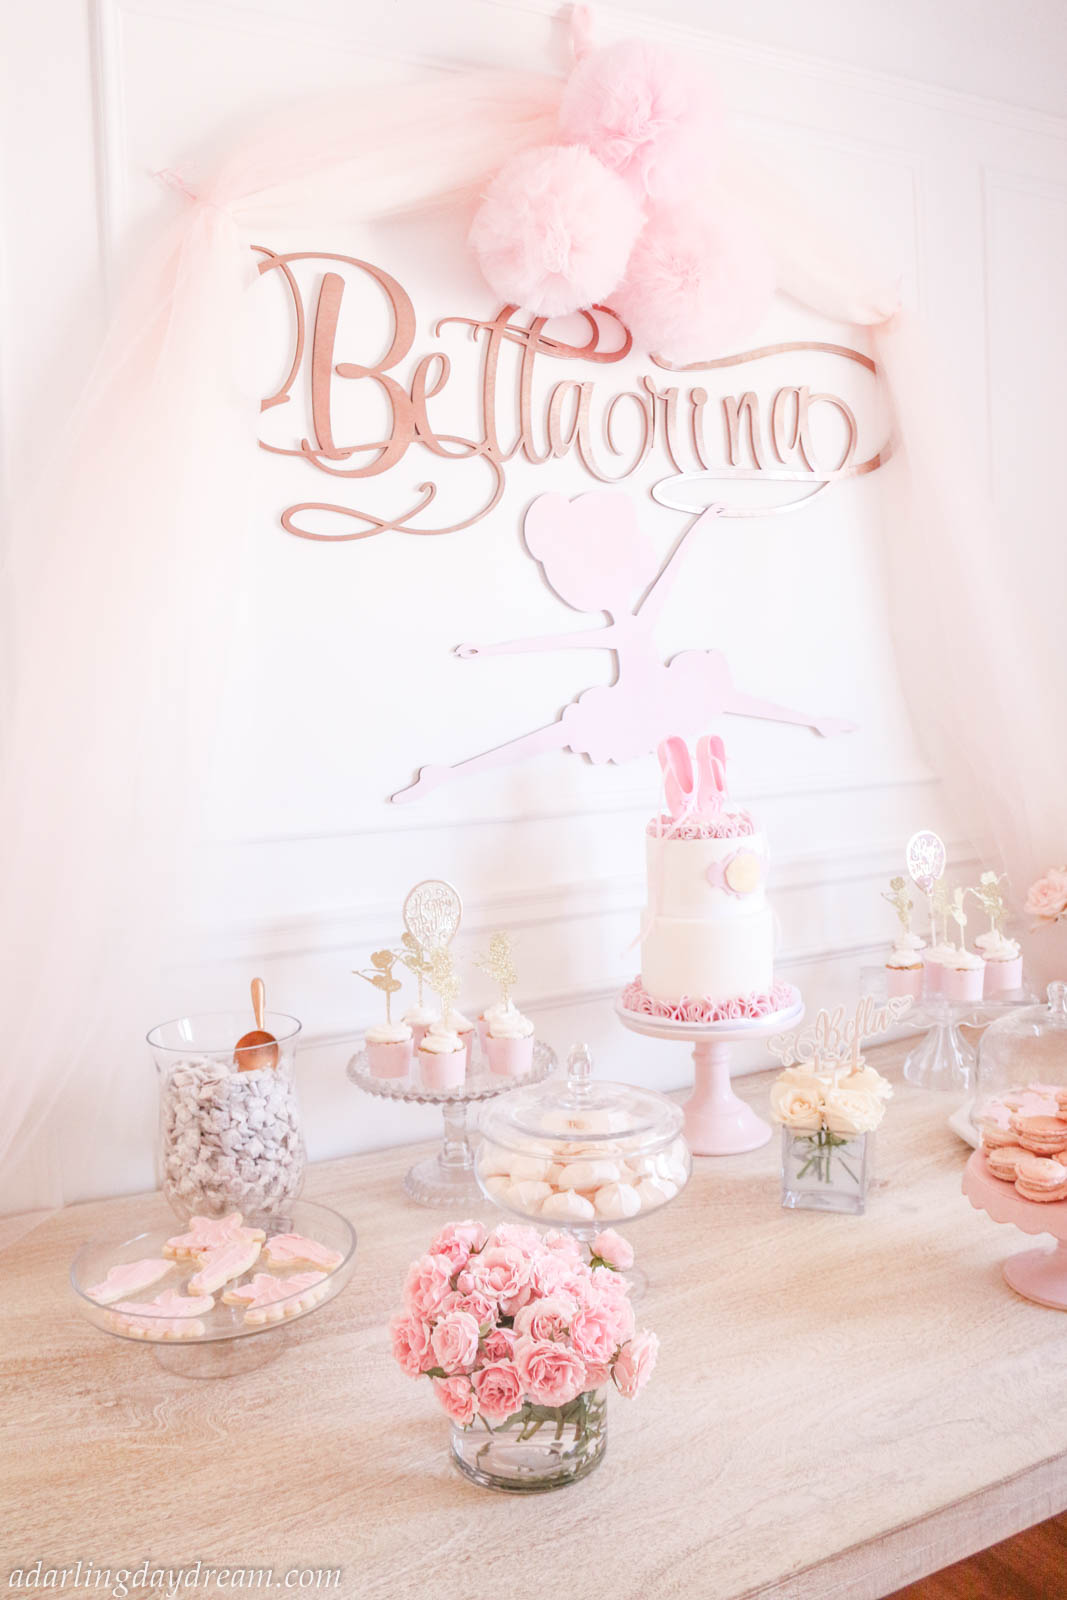 Bella-s-forth-birthday-party-ballerina-unicorn-56